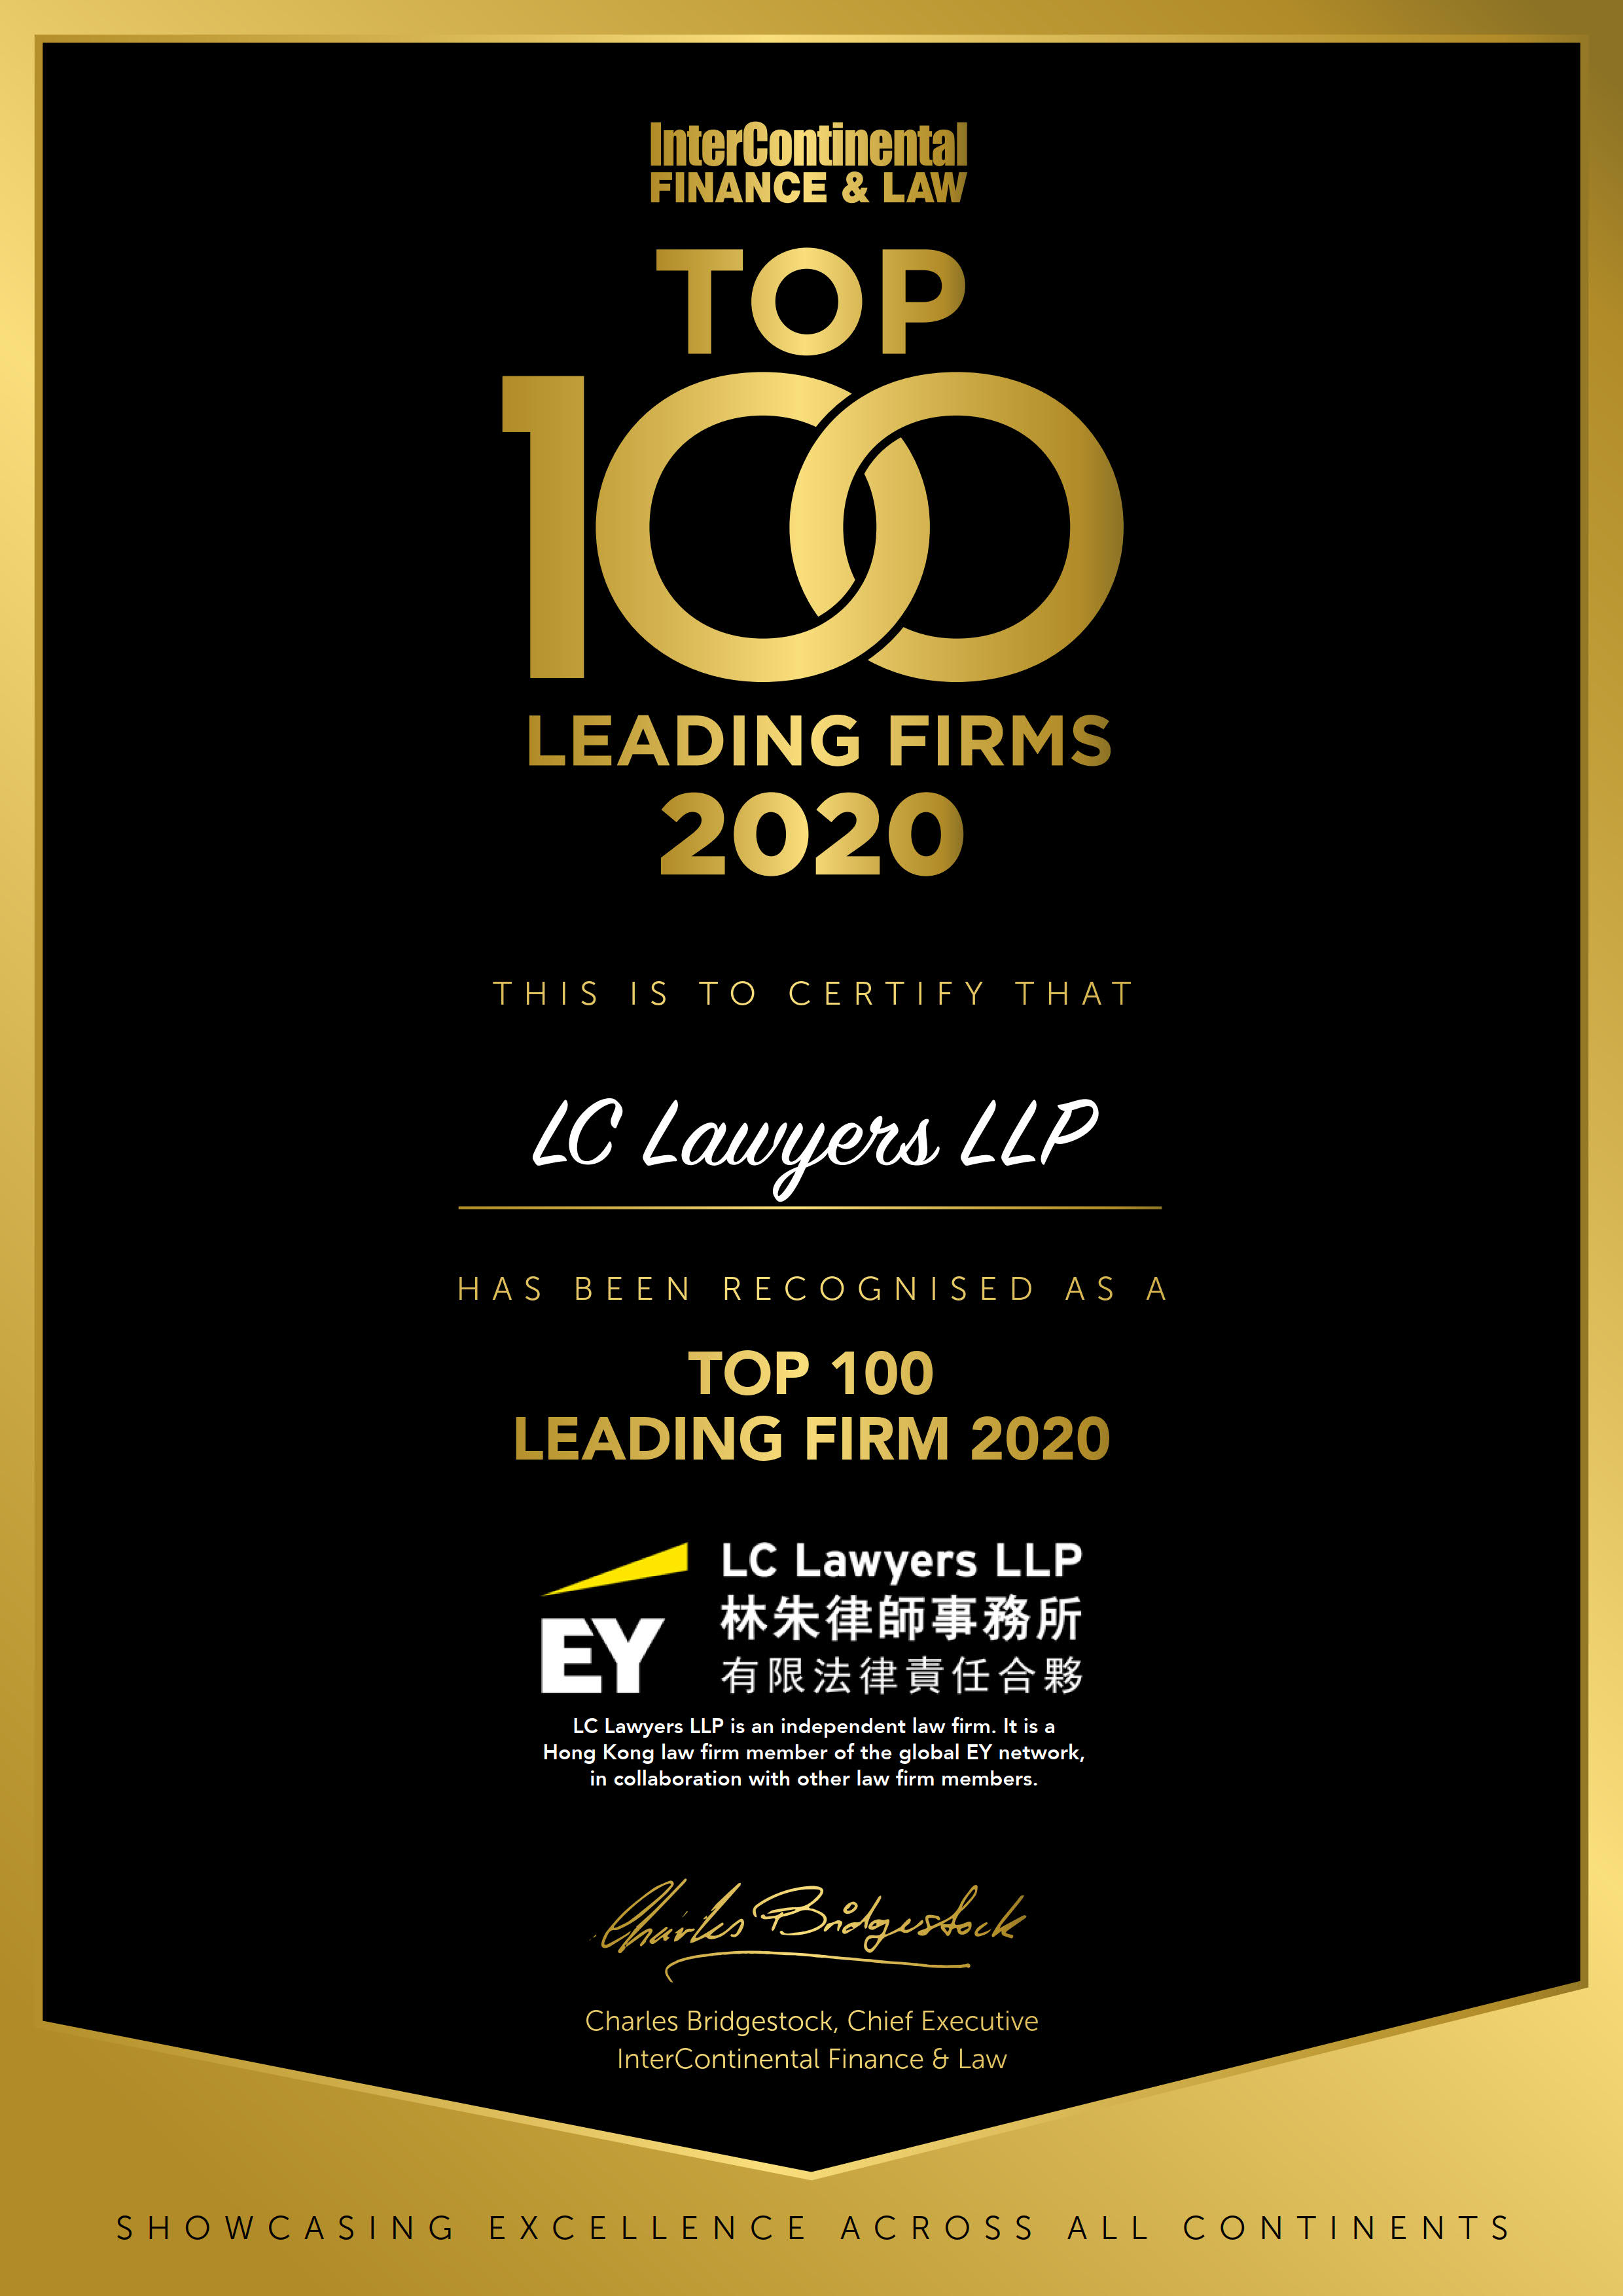 Recognised by InterContinental Finance & Law as one of the Top 100 Leading Firms, LC Lawyers LLP, 2020